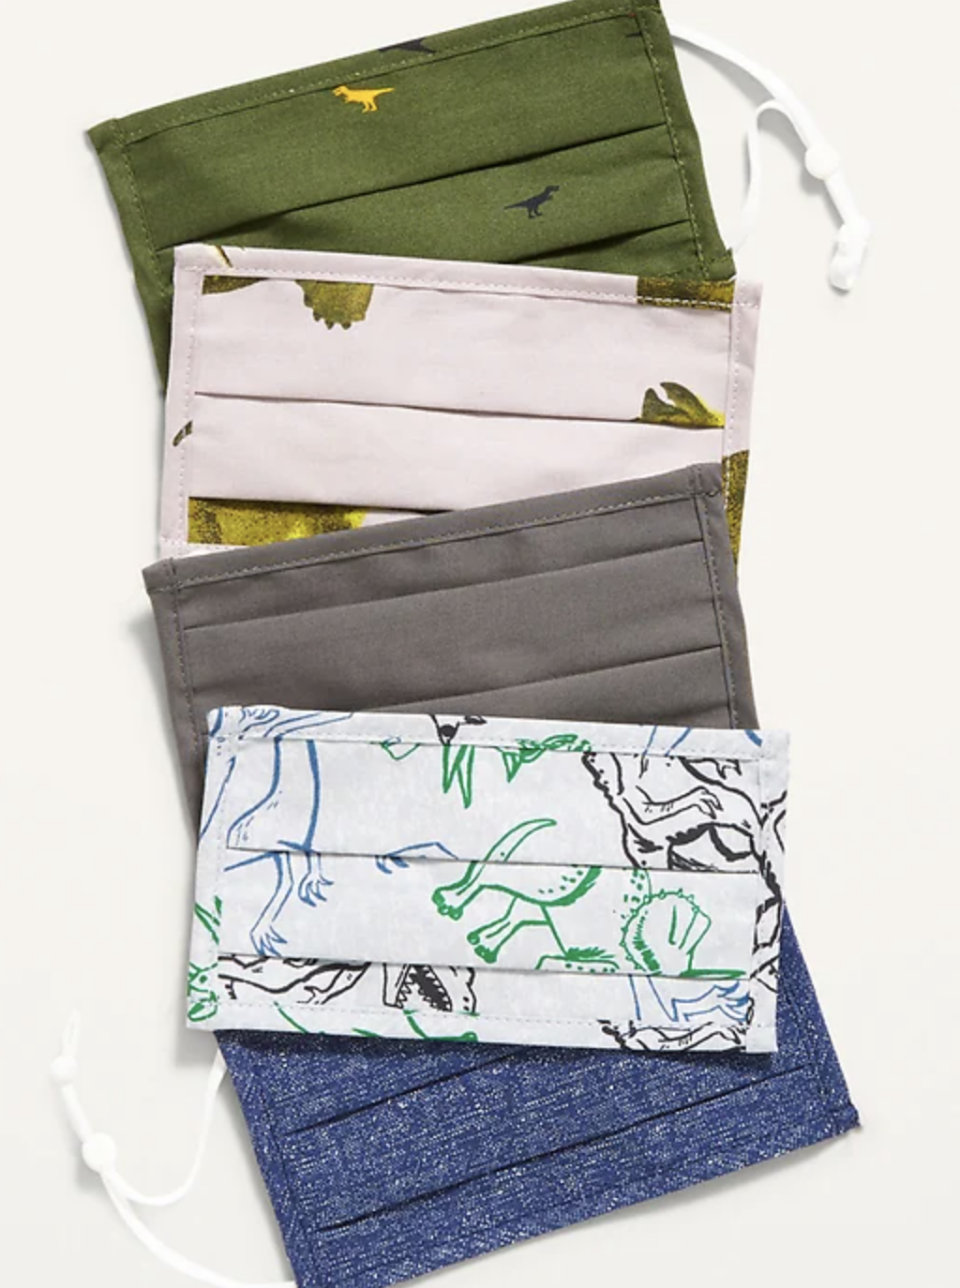 The best face masks for kids in Canada: Variety 5-Pack of Triple-Layer Cloth Pleated Face Masks in Green Dinosaurs (Photo via Old Navy)